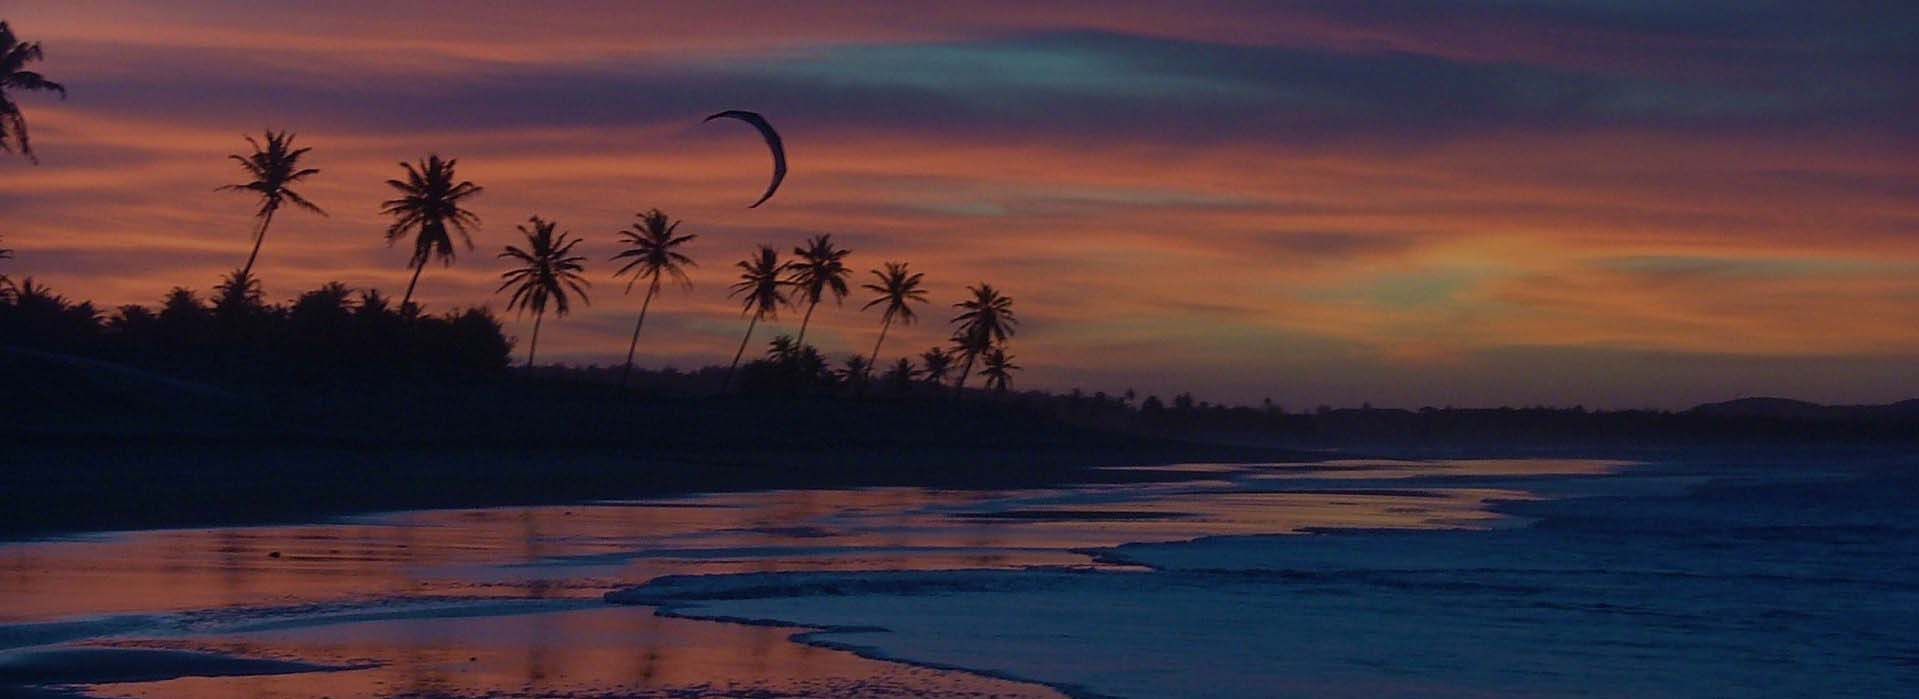 Beach by Night | Windtown Cucumbo Brazil